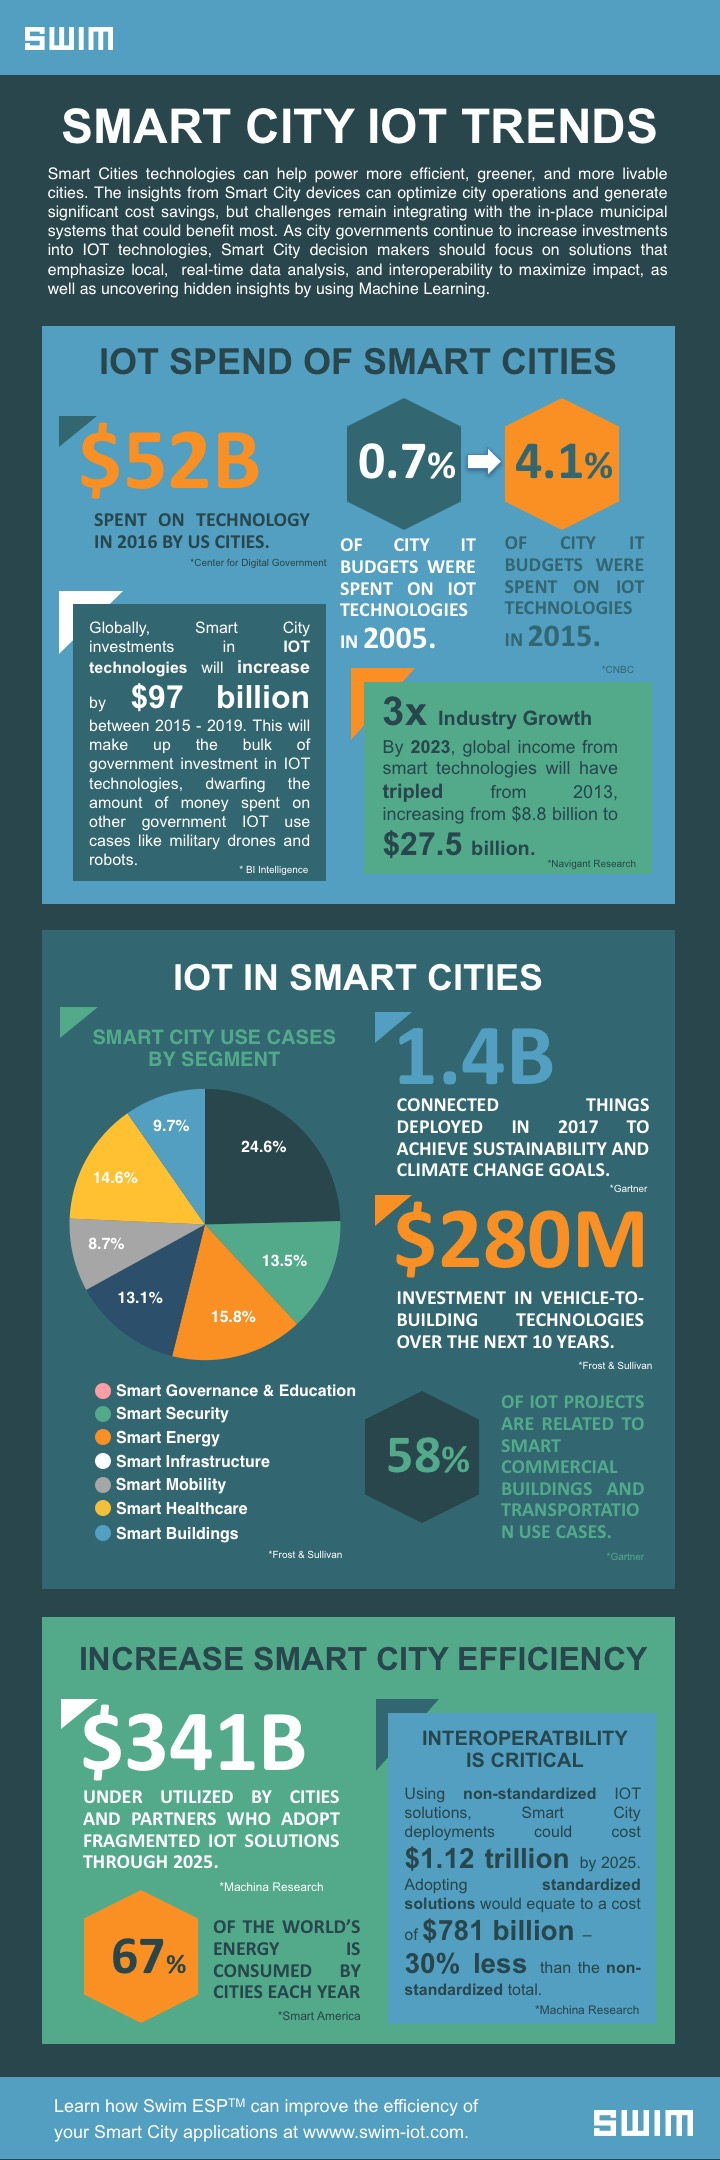 Swim_Smart City IOT Trends_Infographic